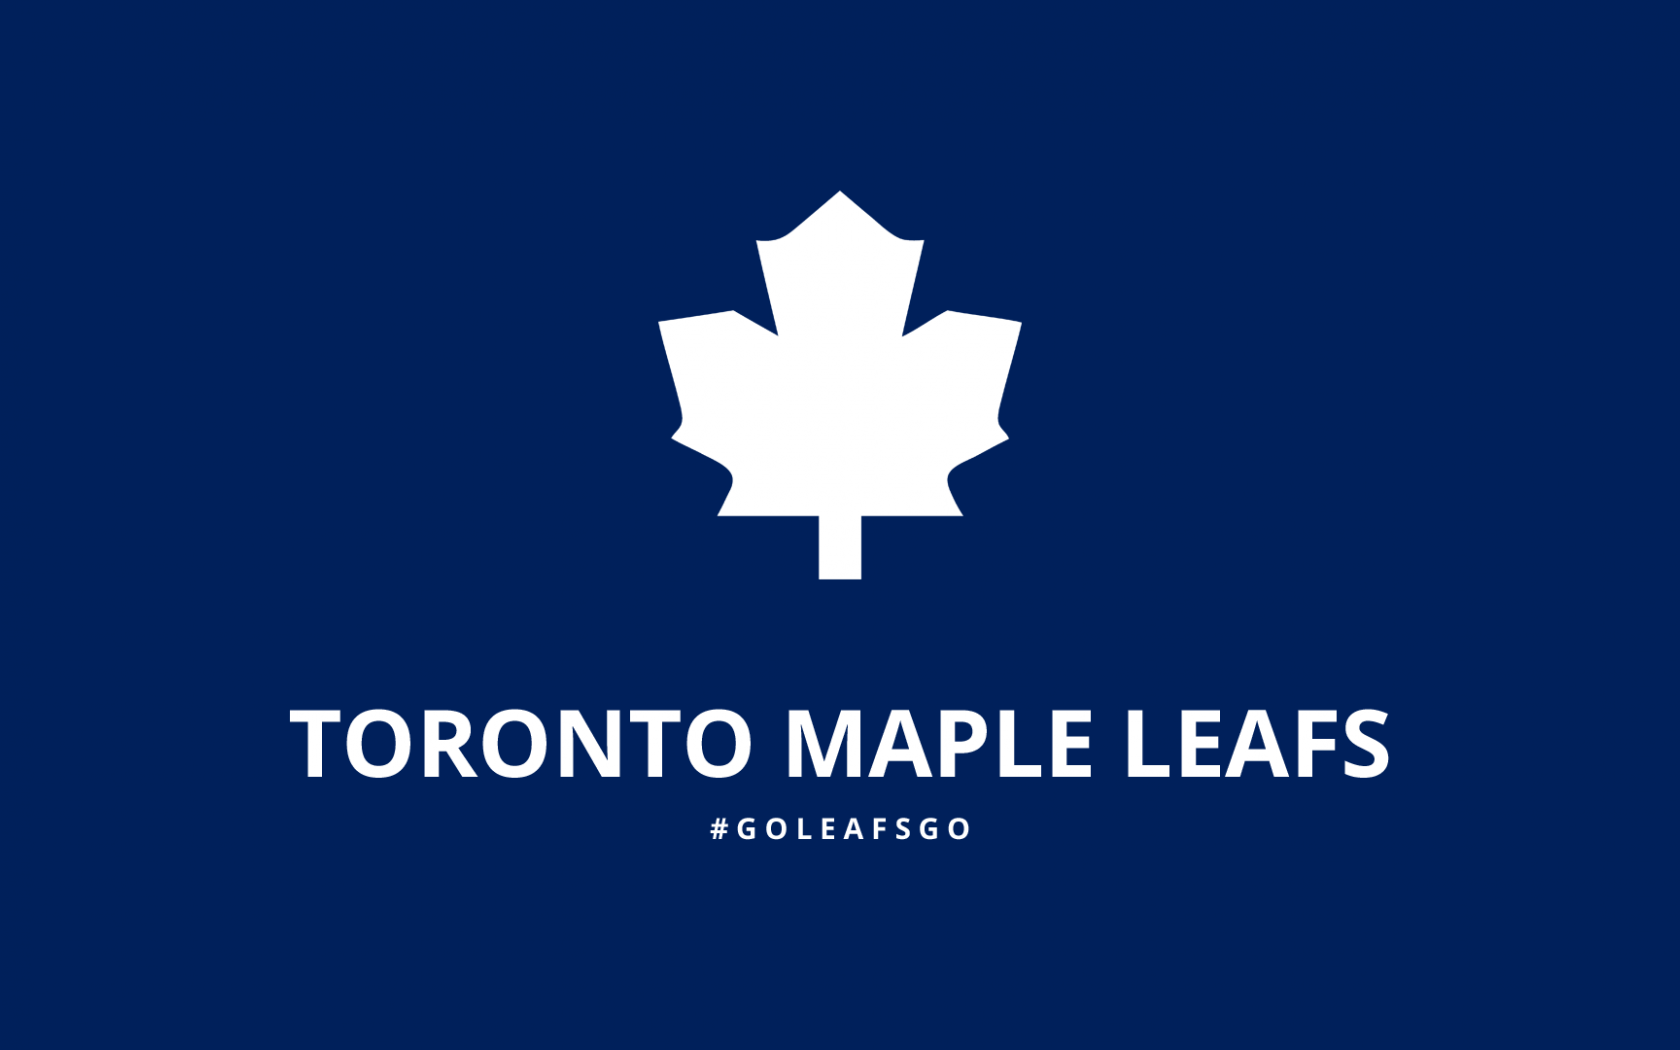 Free Download Minimalist Toronto Maple Leafs Wallpaper By Lfiore